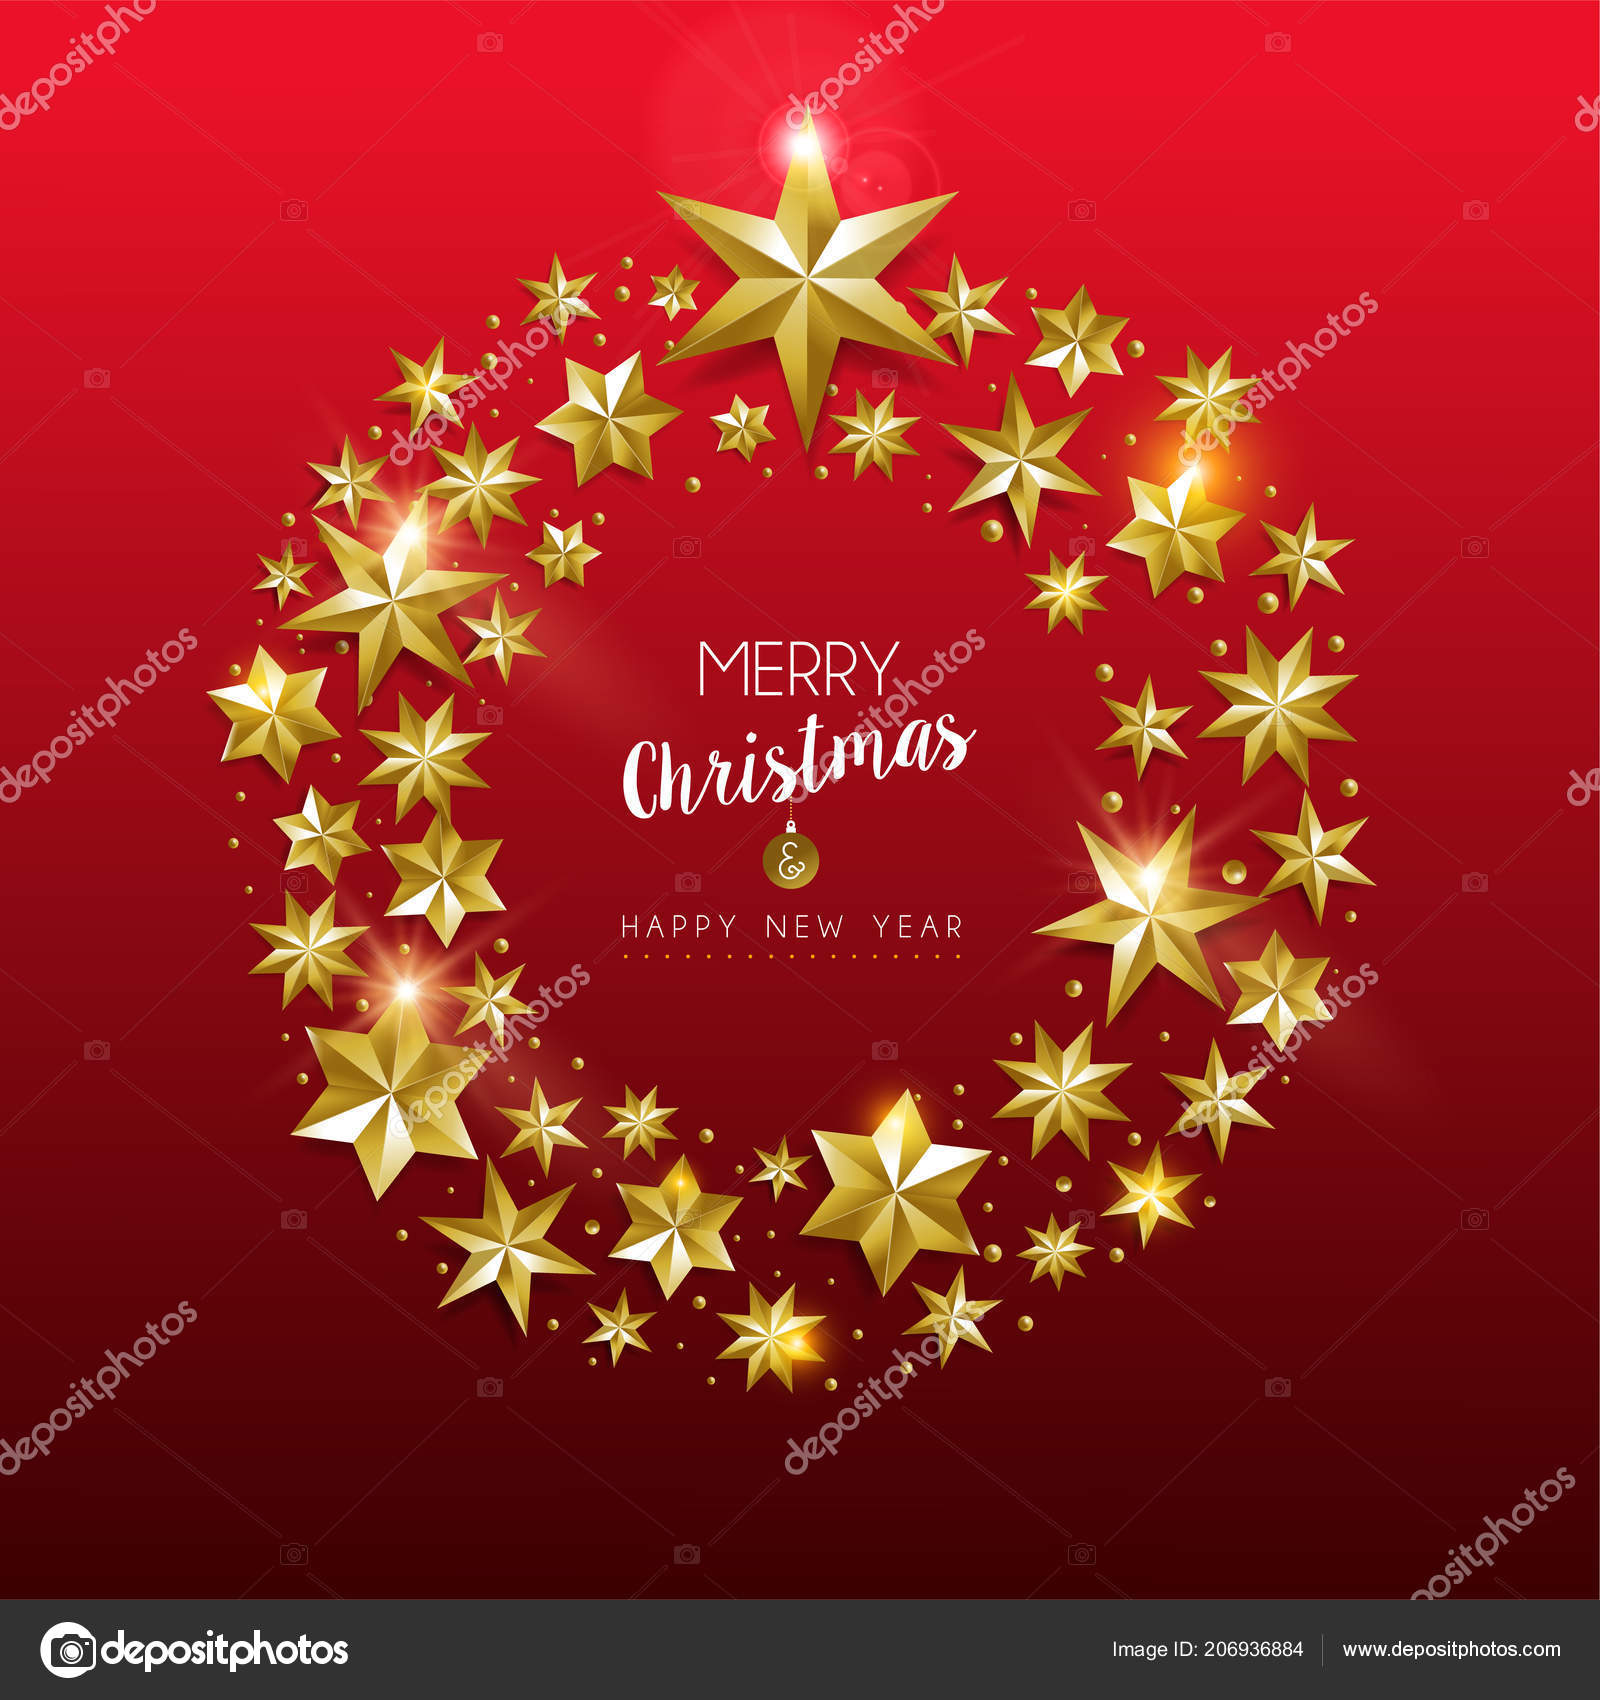 Merry christmas new year greeting card realistic gold stars glitter merry christmas new year greeting card realistic gold stars glitter stock vector m4hsunfo